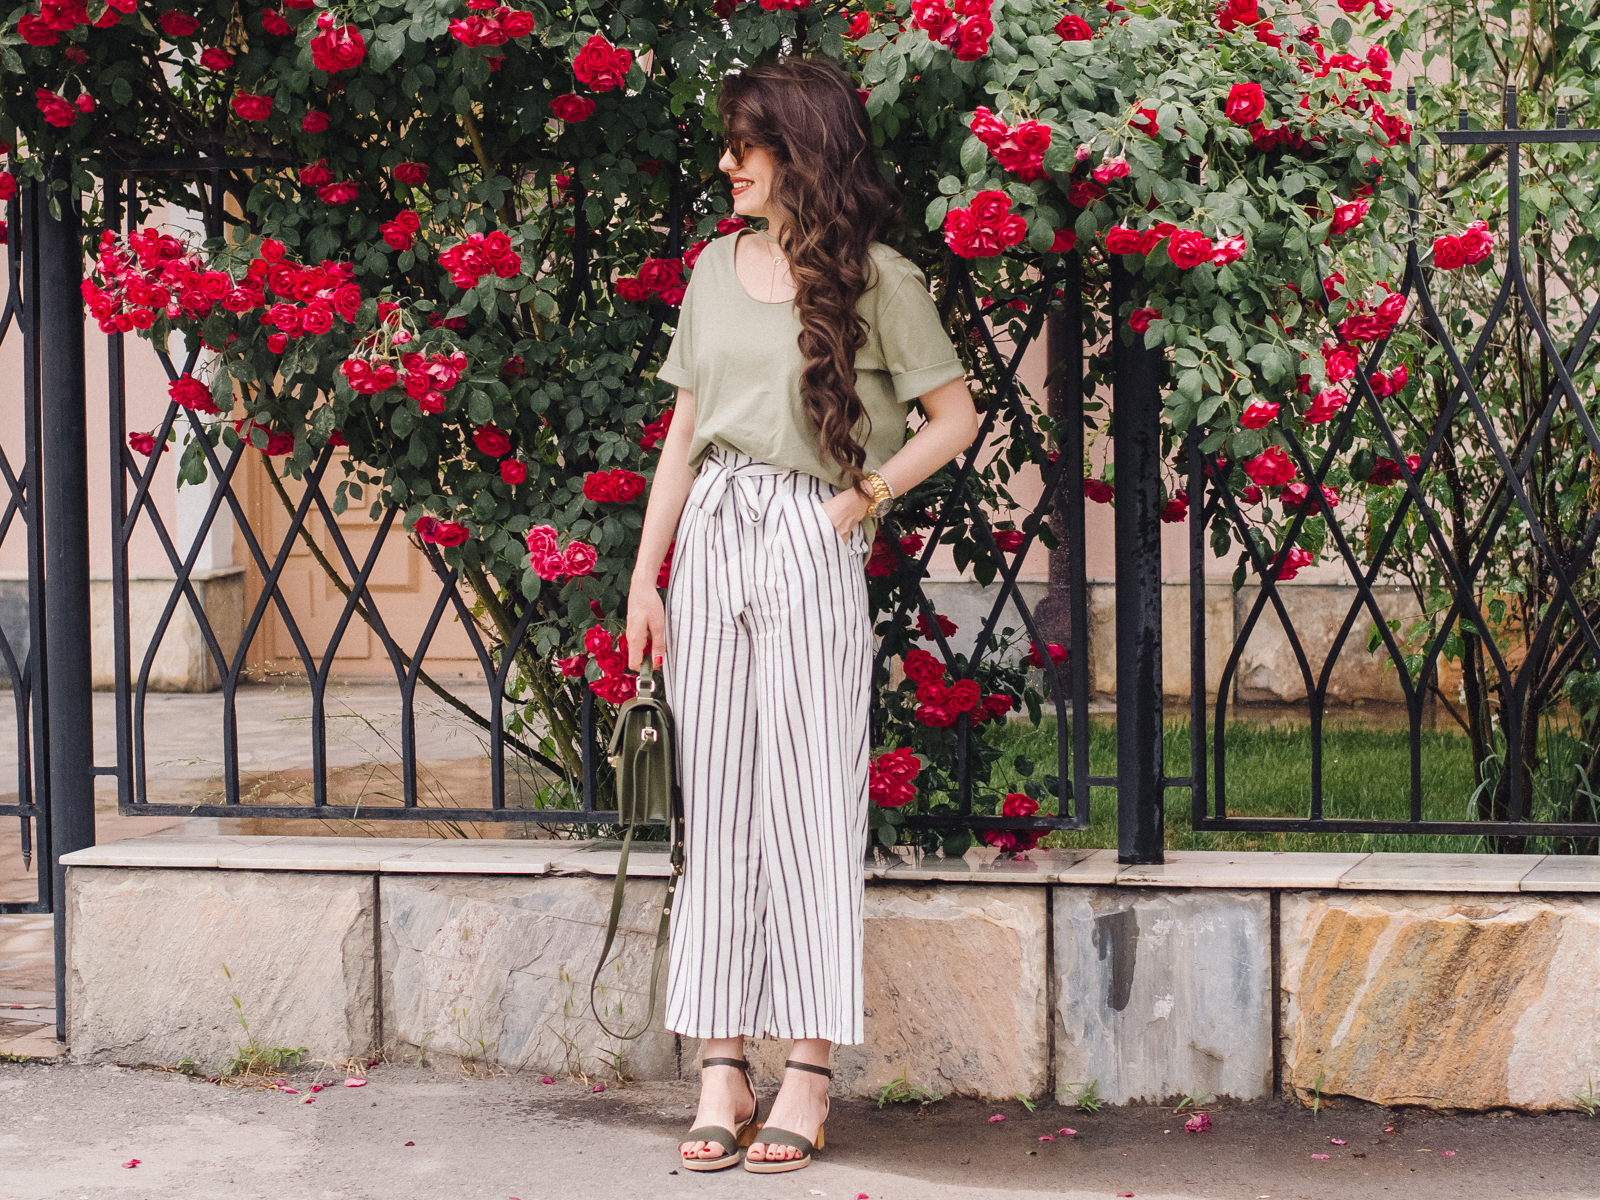 fashion blogger diyorasnotes diyora beta style fashion culottes green t-shirt rose